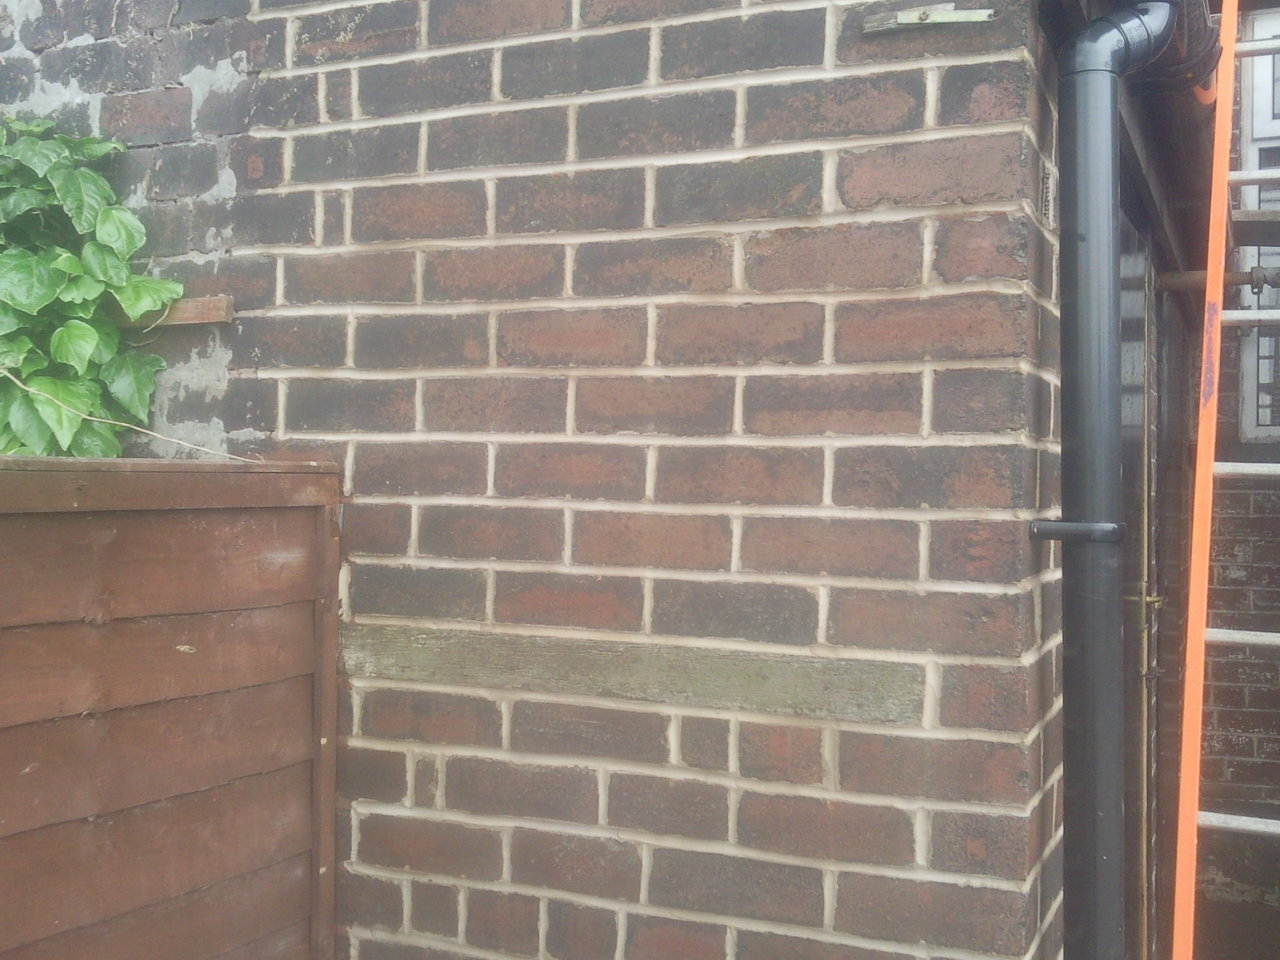 Before, during and after repointing